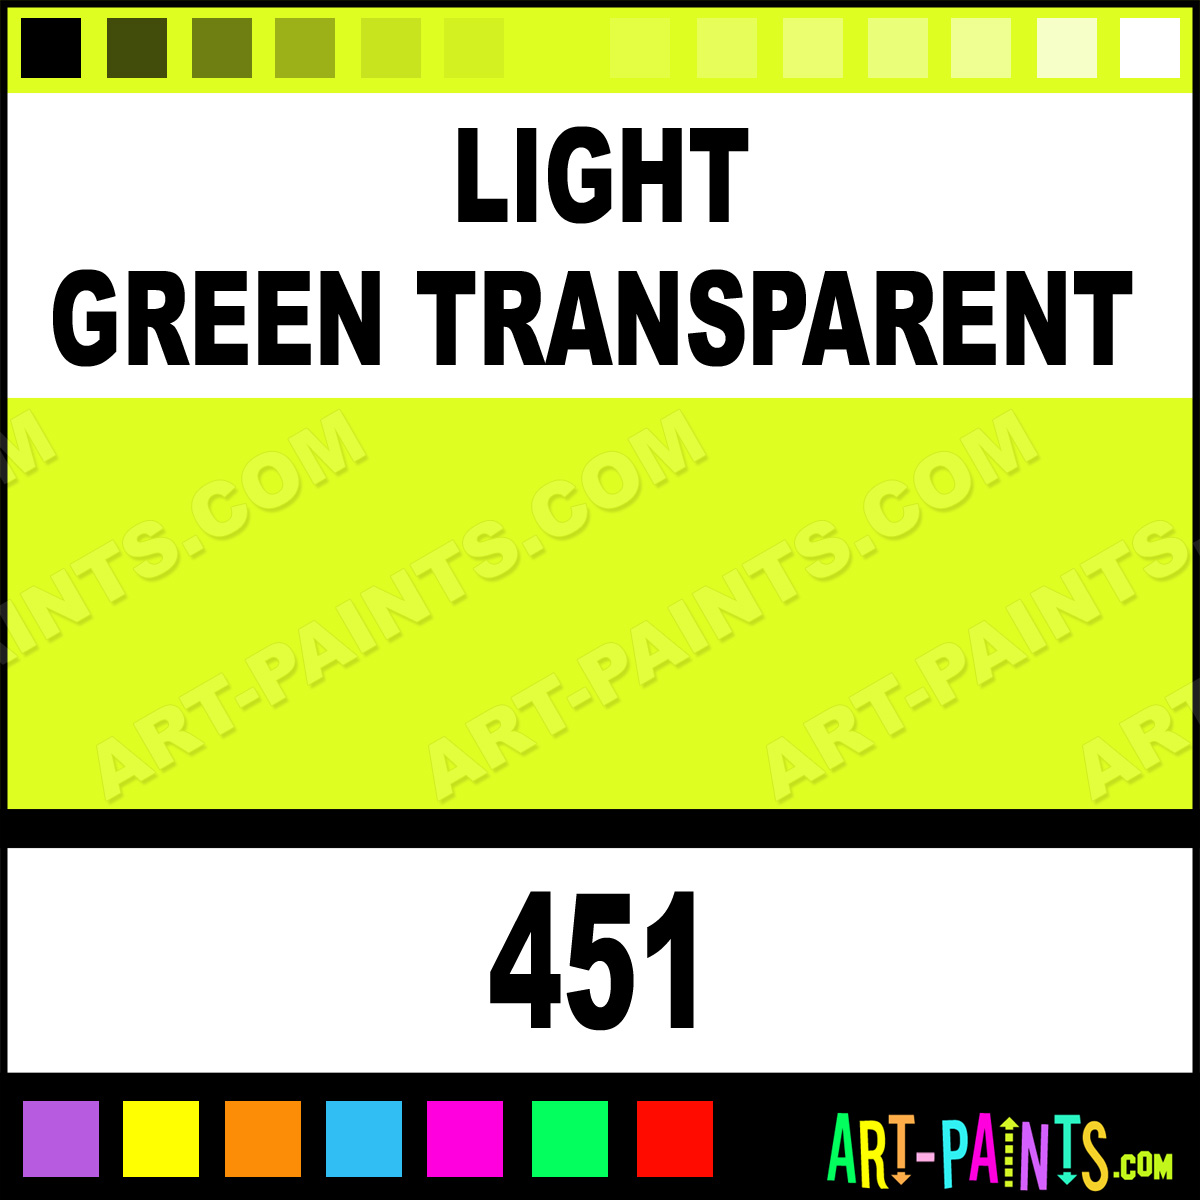 Light Green Transparent Lacquer Airbrush Spray Paints 451 Light Green Transparent Paint